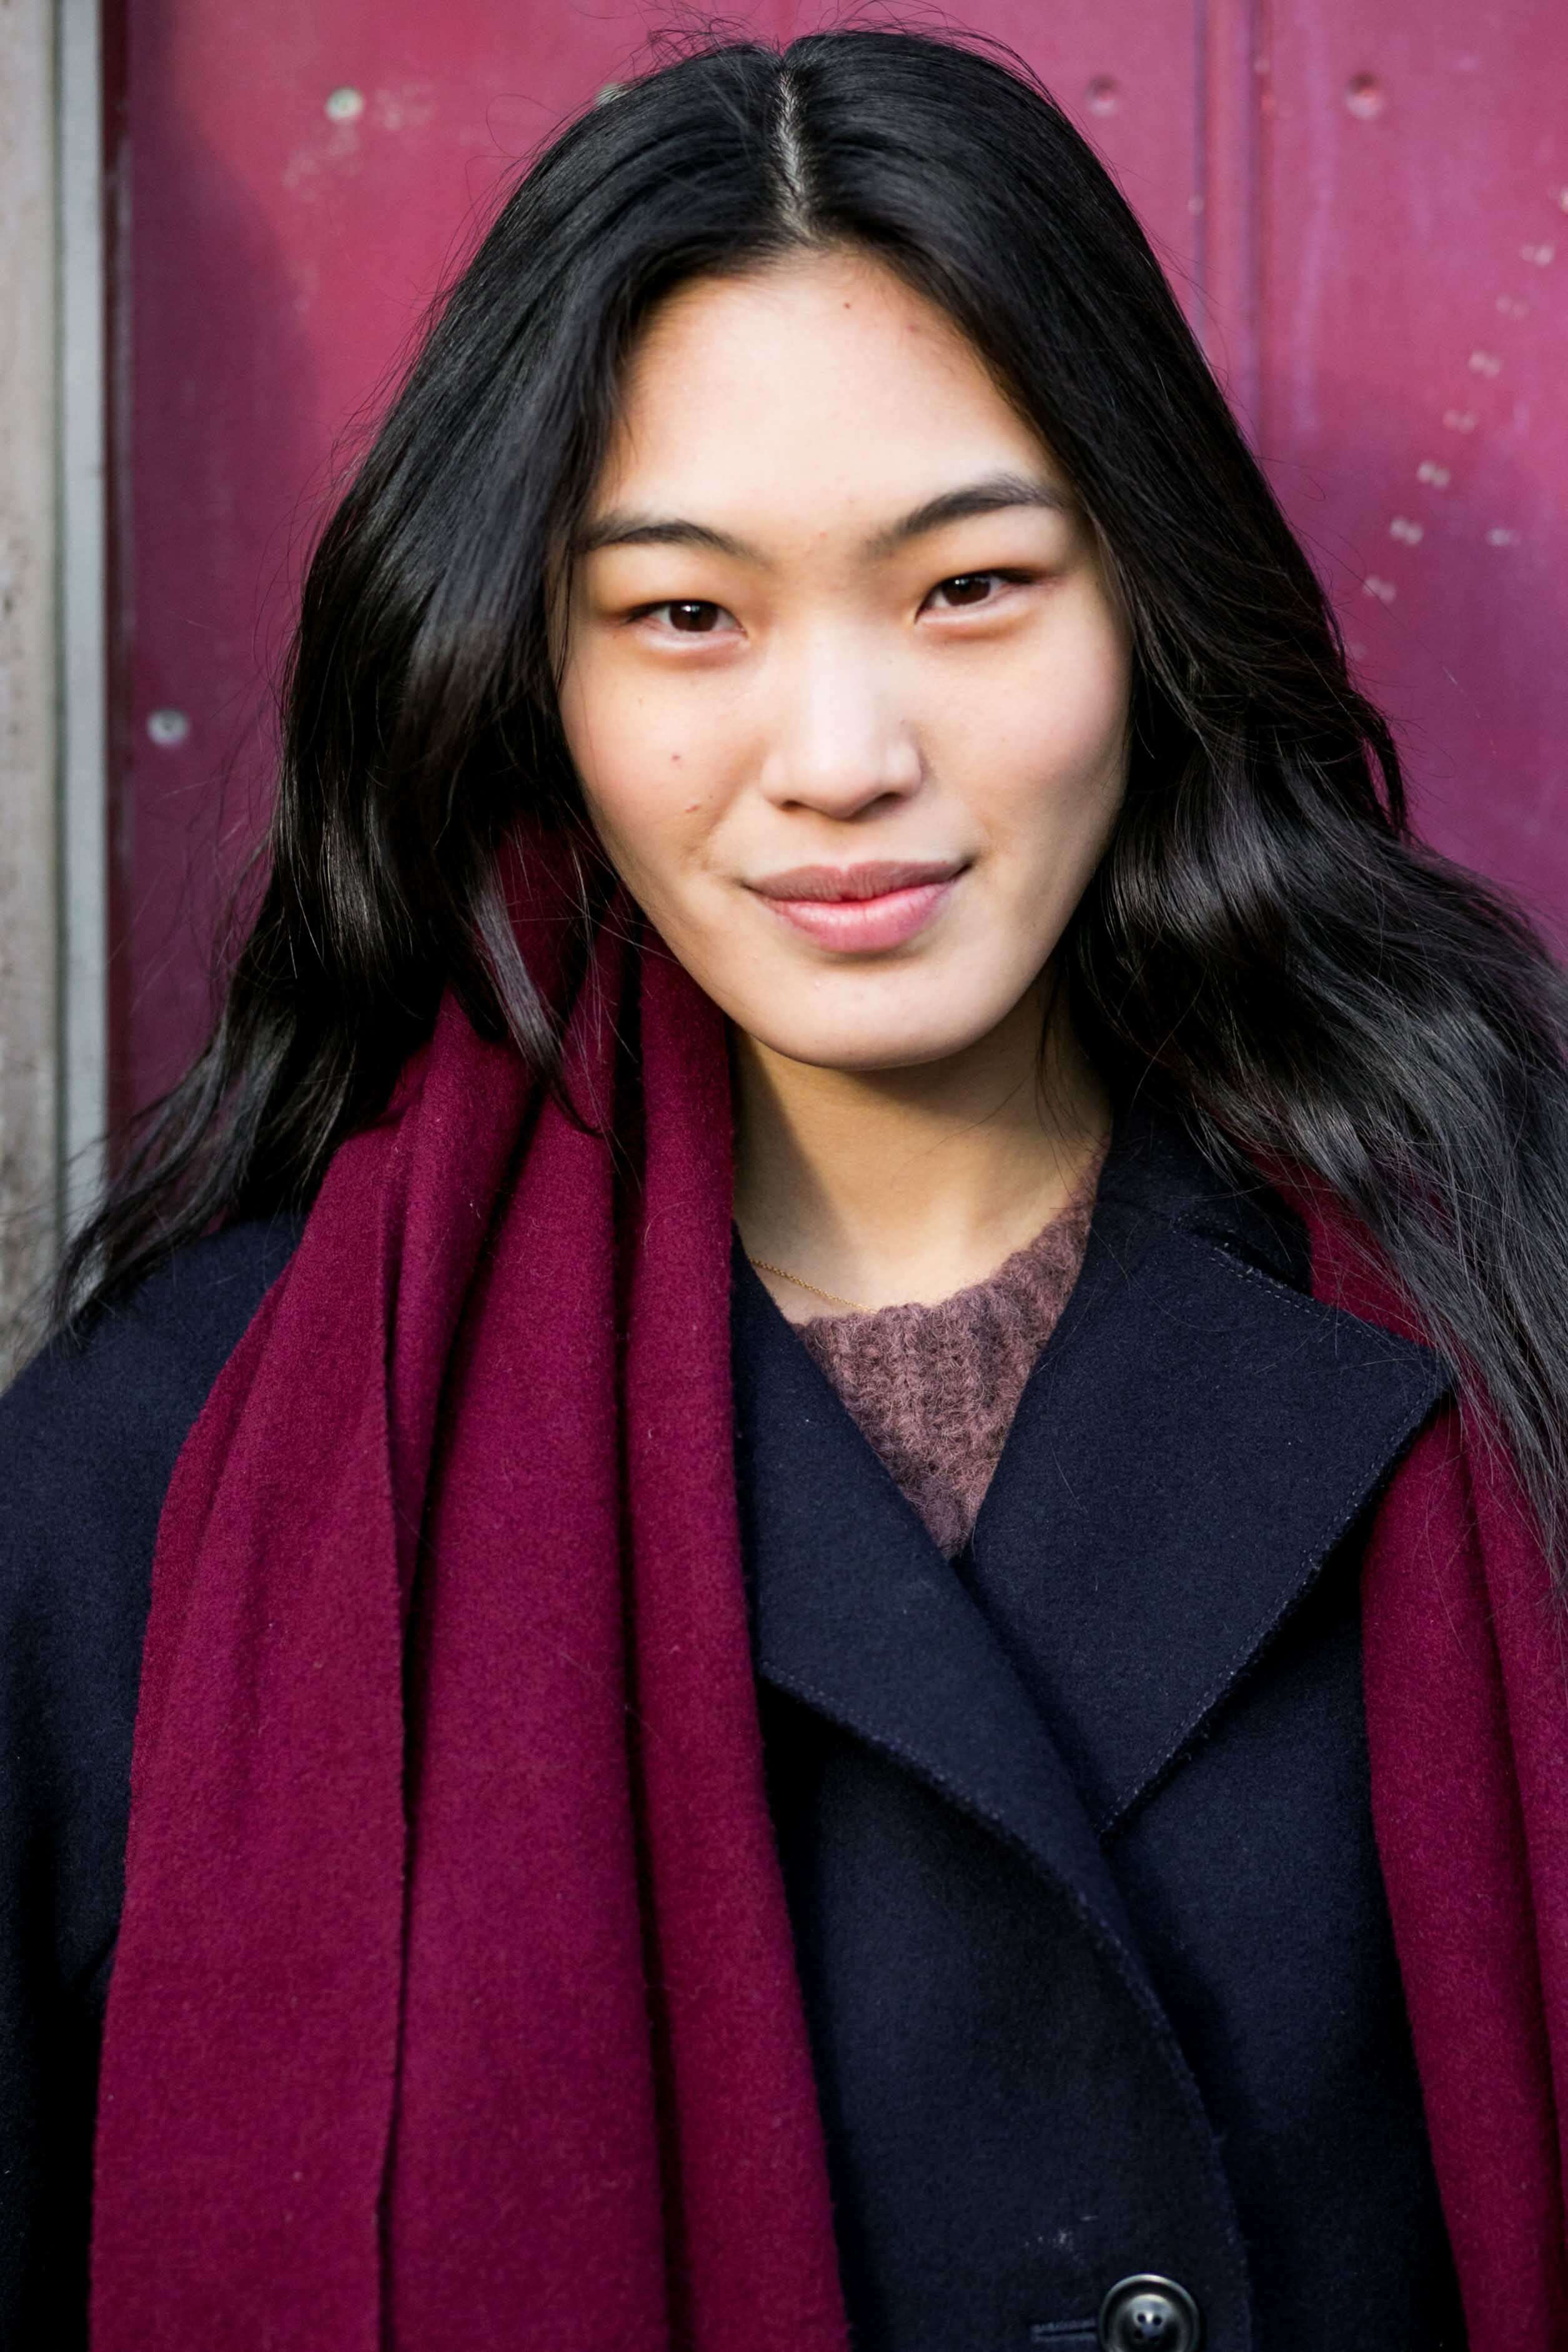 17 Amazing Asian hairstyles for your next trip to the salon